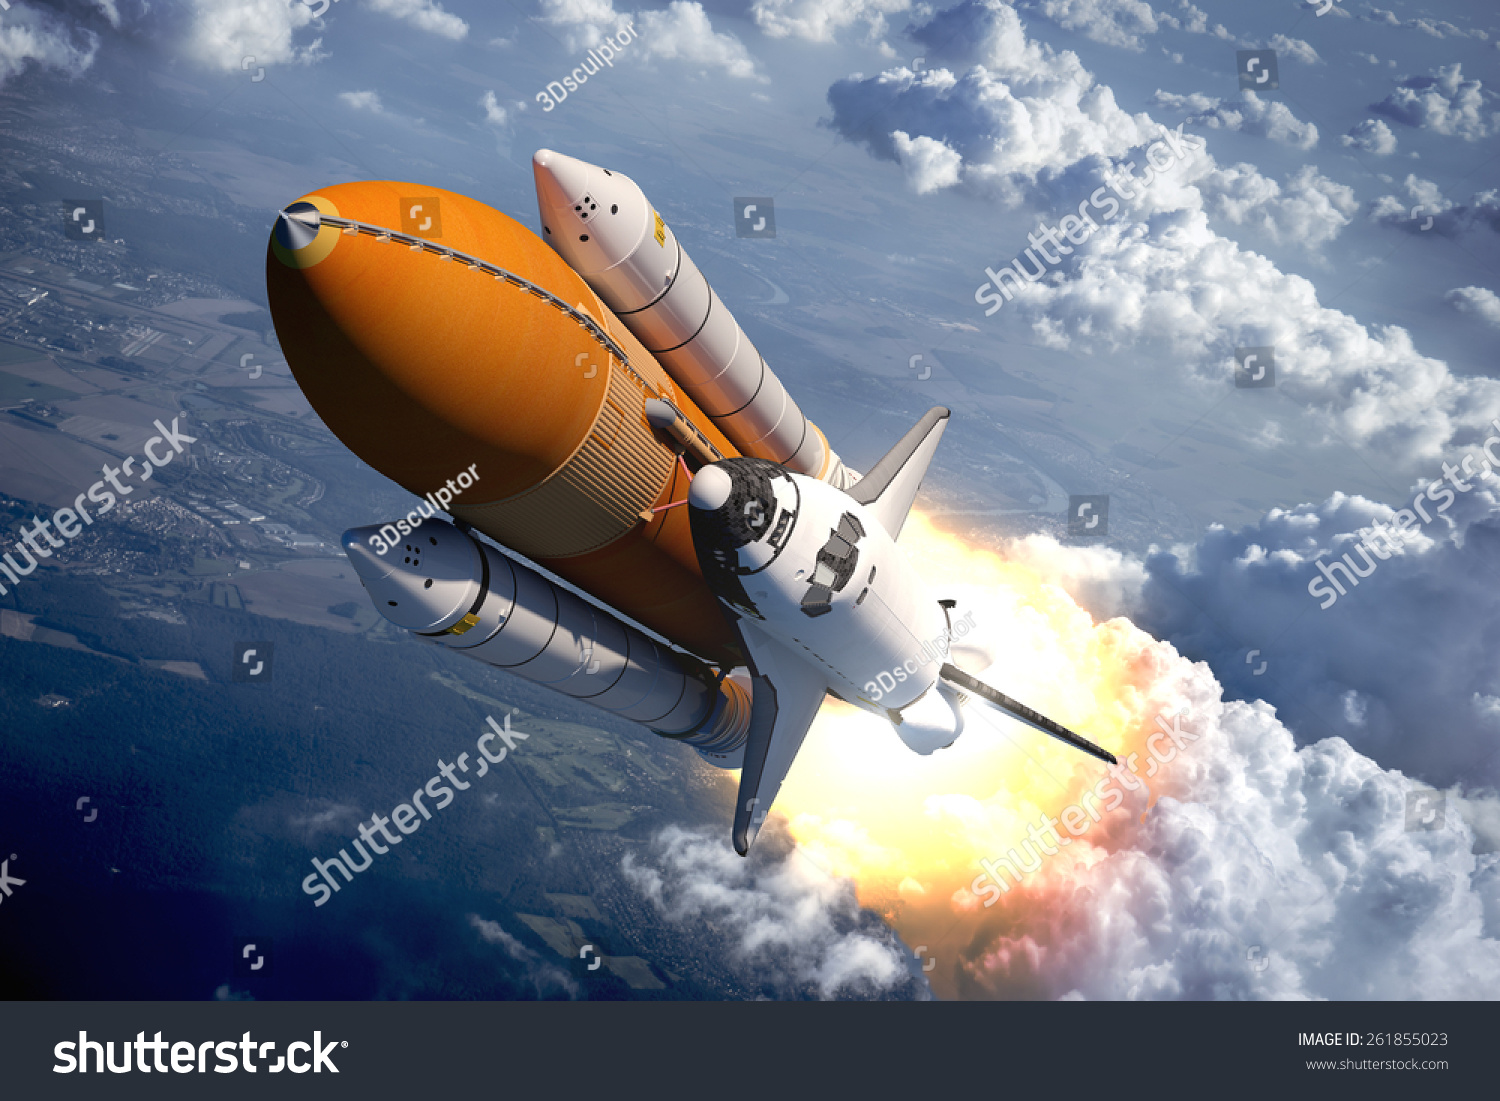 Space shuttle flying over clouds 3d stock illustration for Flying spaces